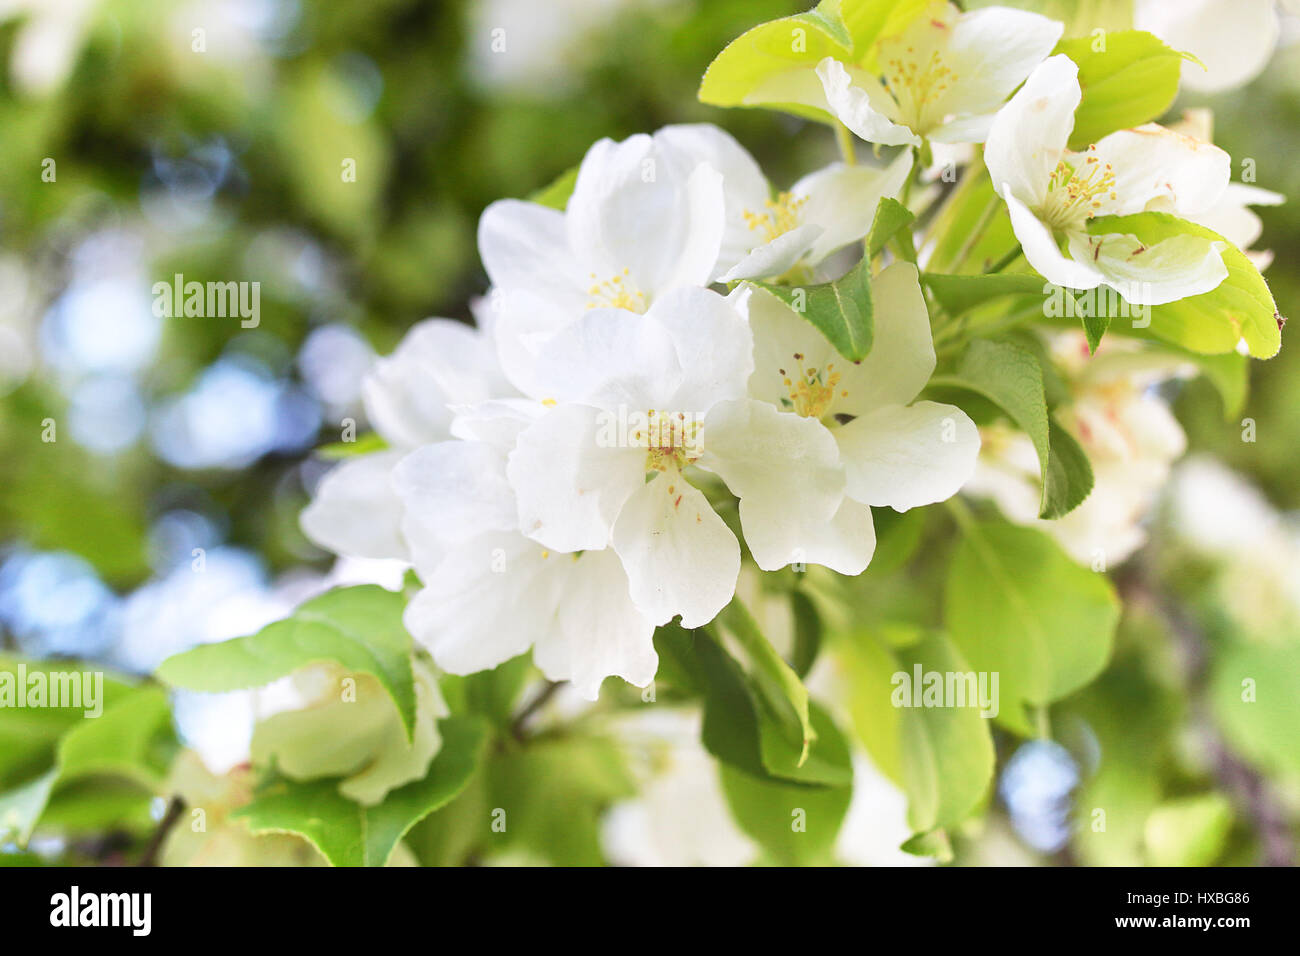 Early spring flowering apple tree with bright white flowers stock early spring flowering apple tree with bright white flowers mightylinksfo